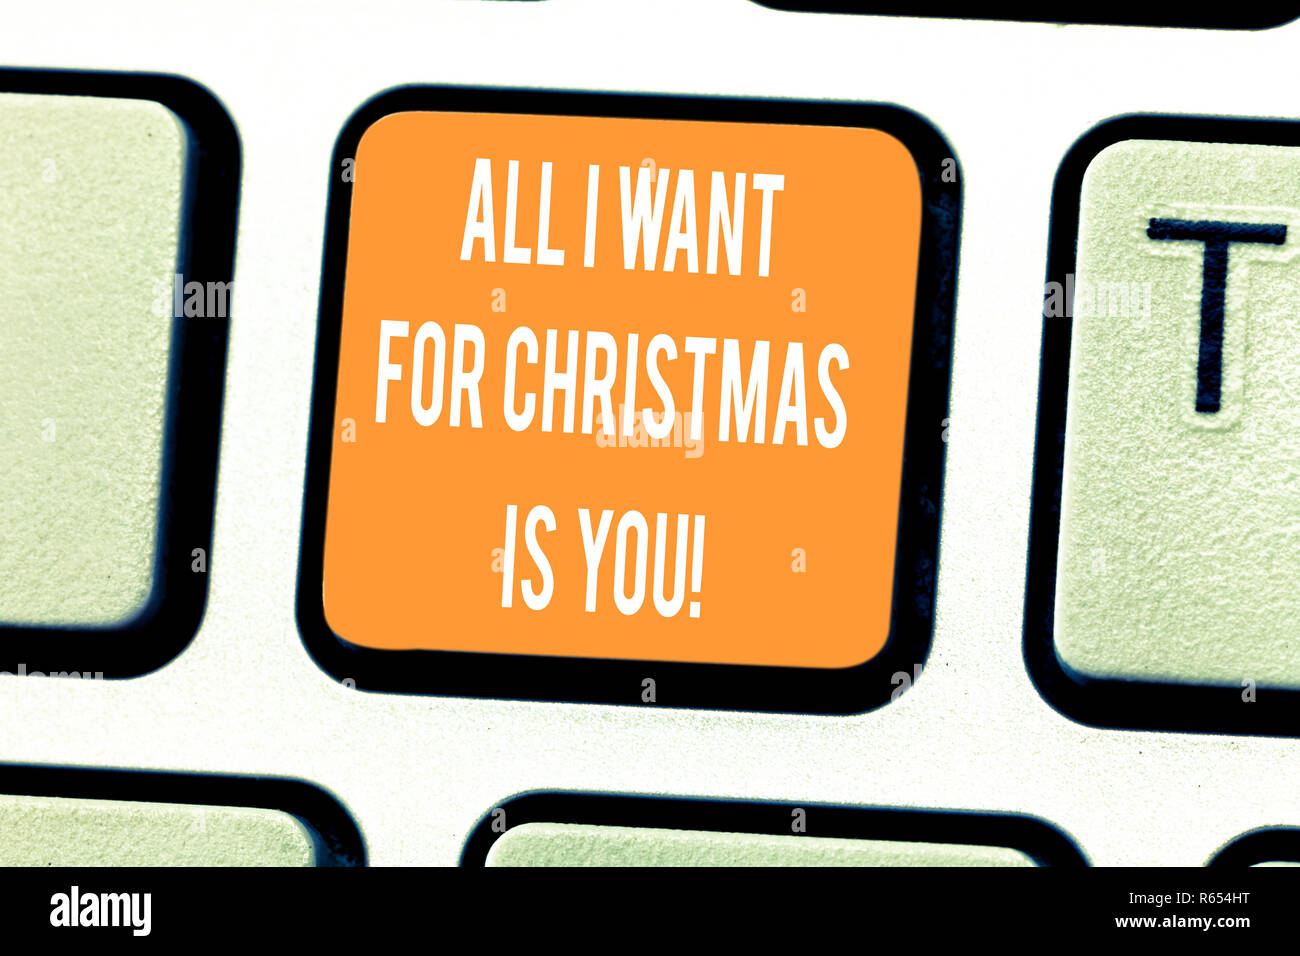 eec0ecff13 All I Want For Christmas Is You Immagini & All I Want For Christmas ...